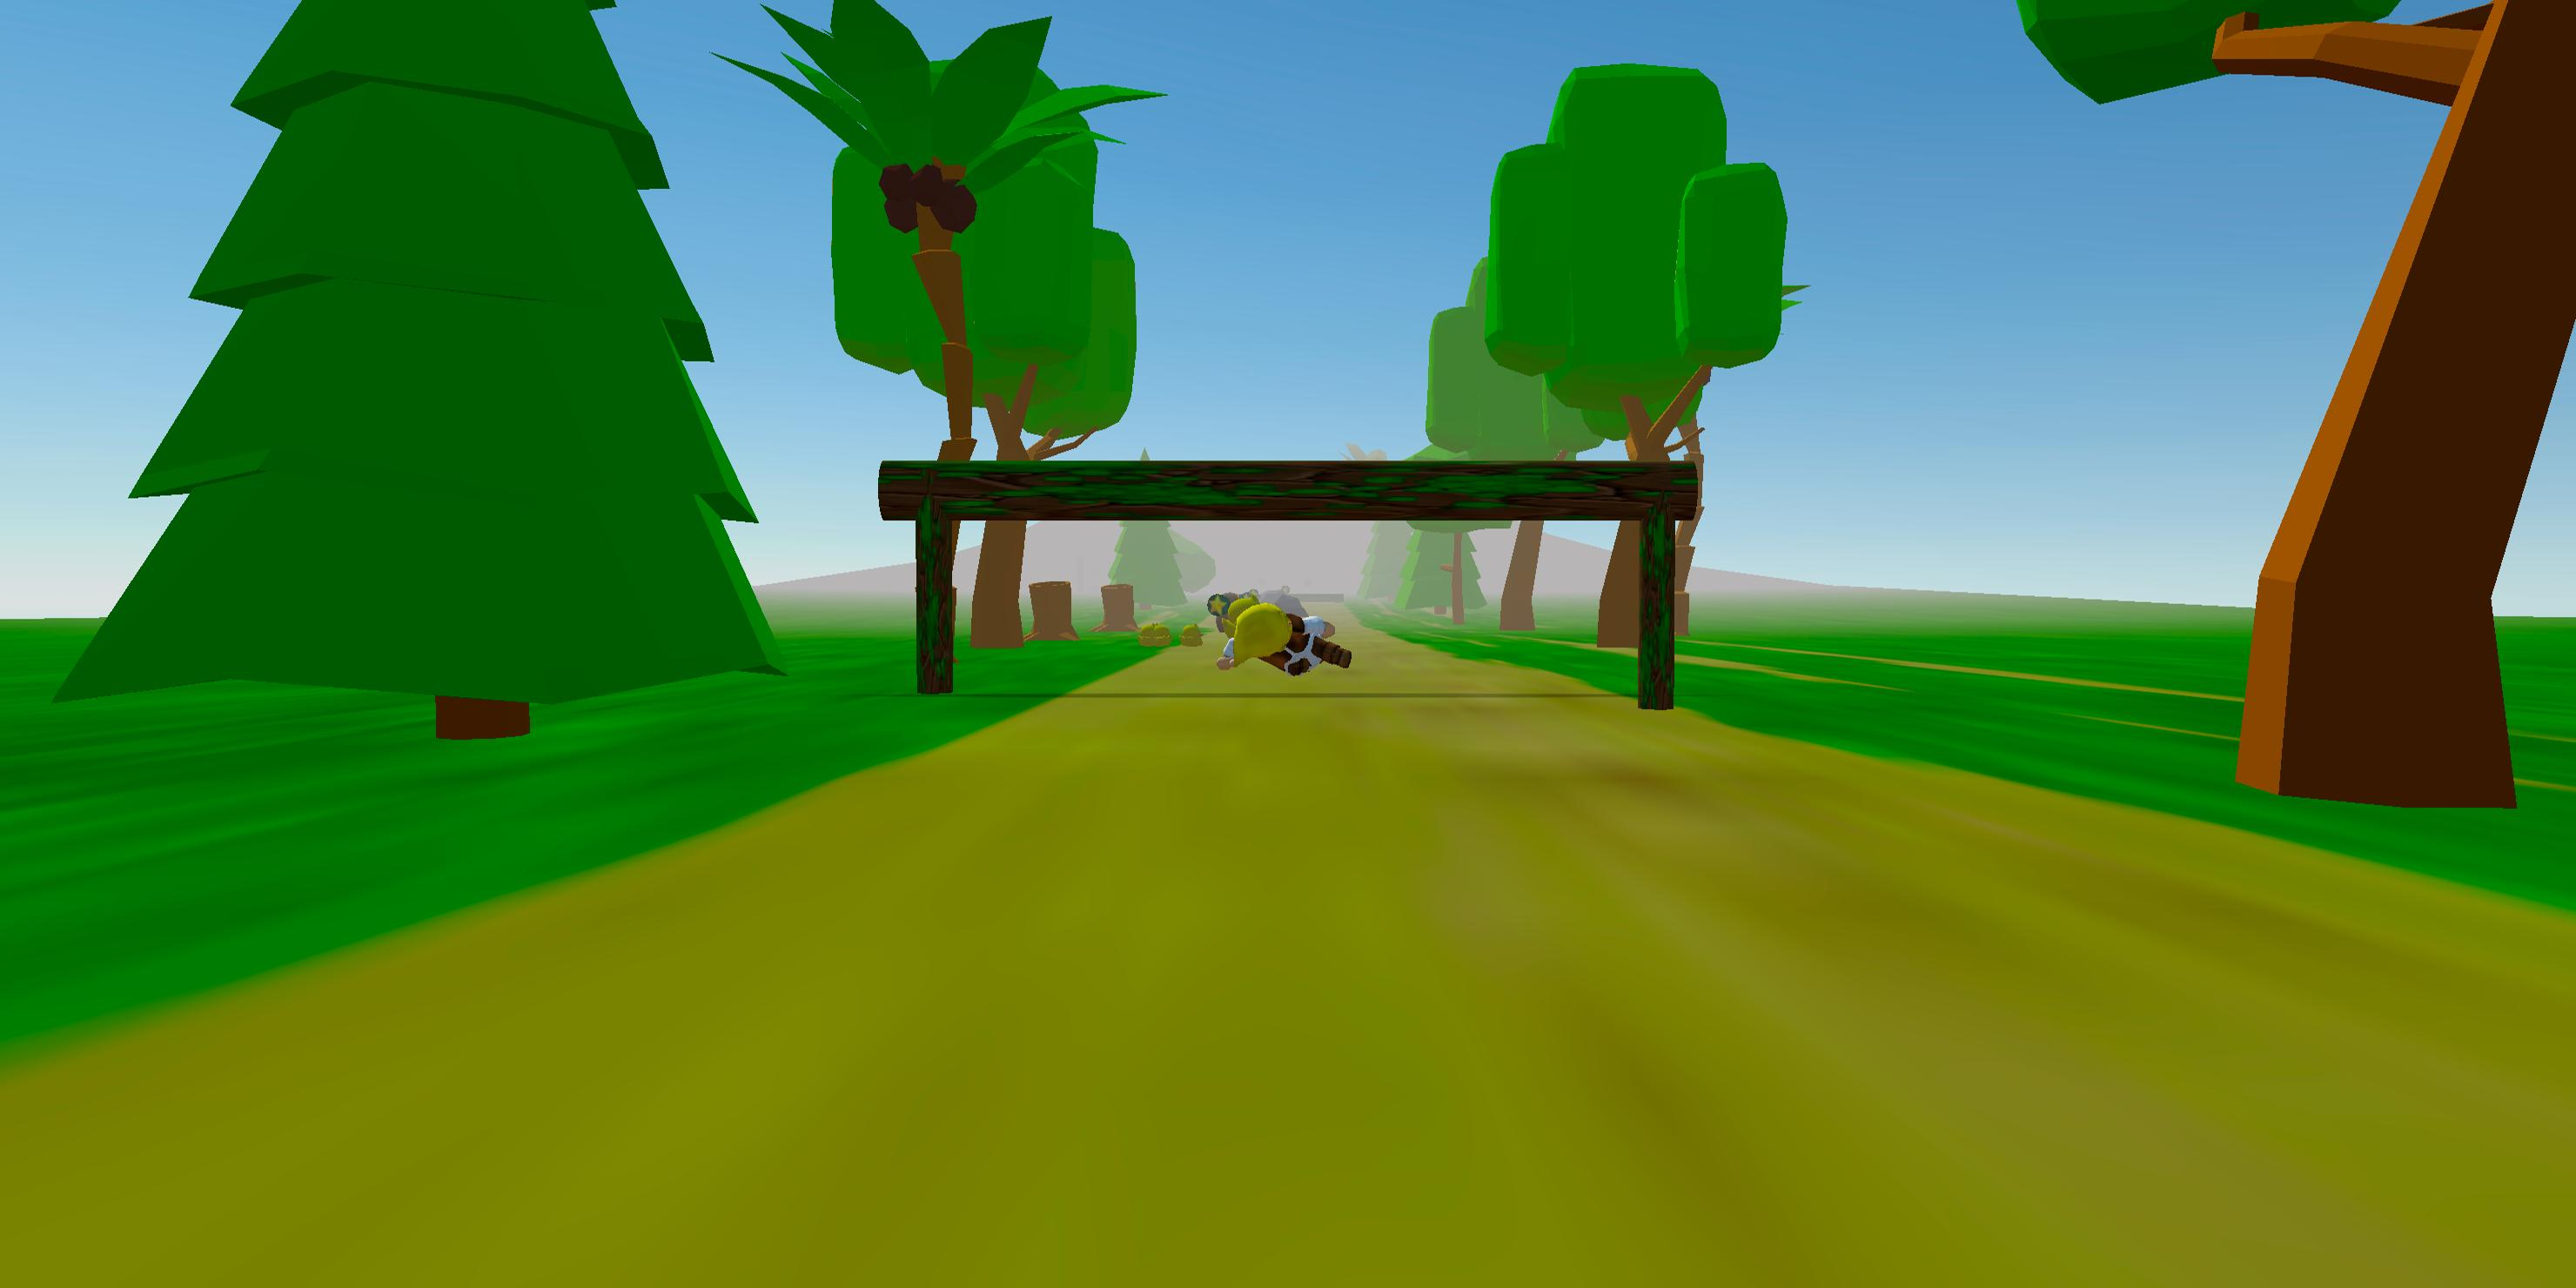 Running Crazy Farm 0.4 Screenshot 3